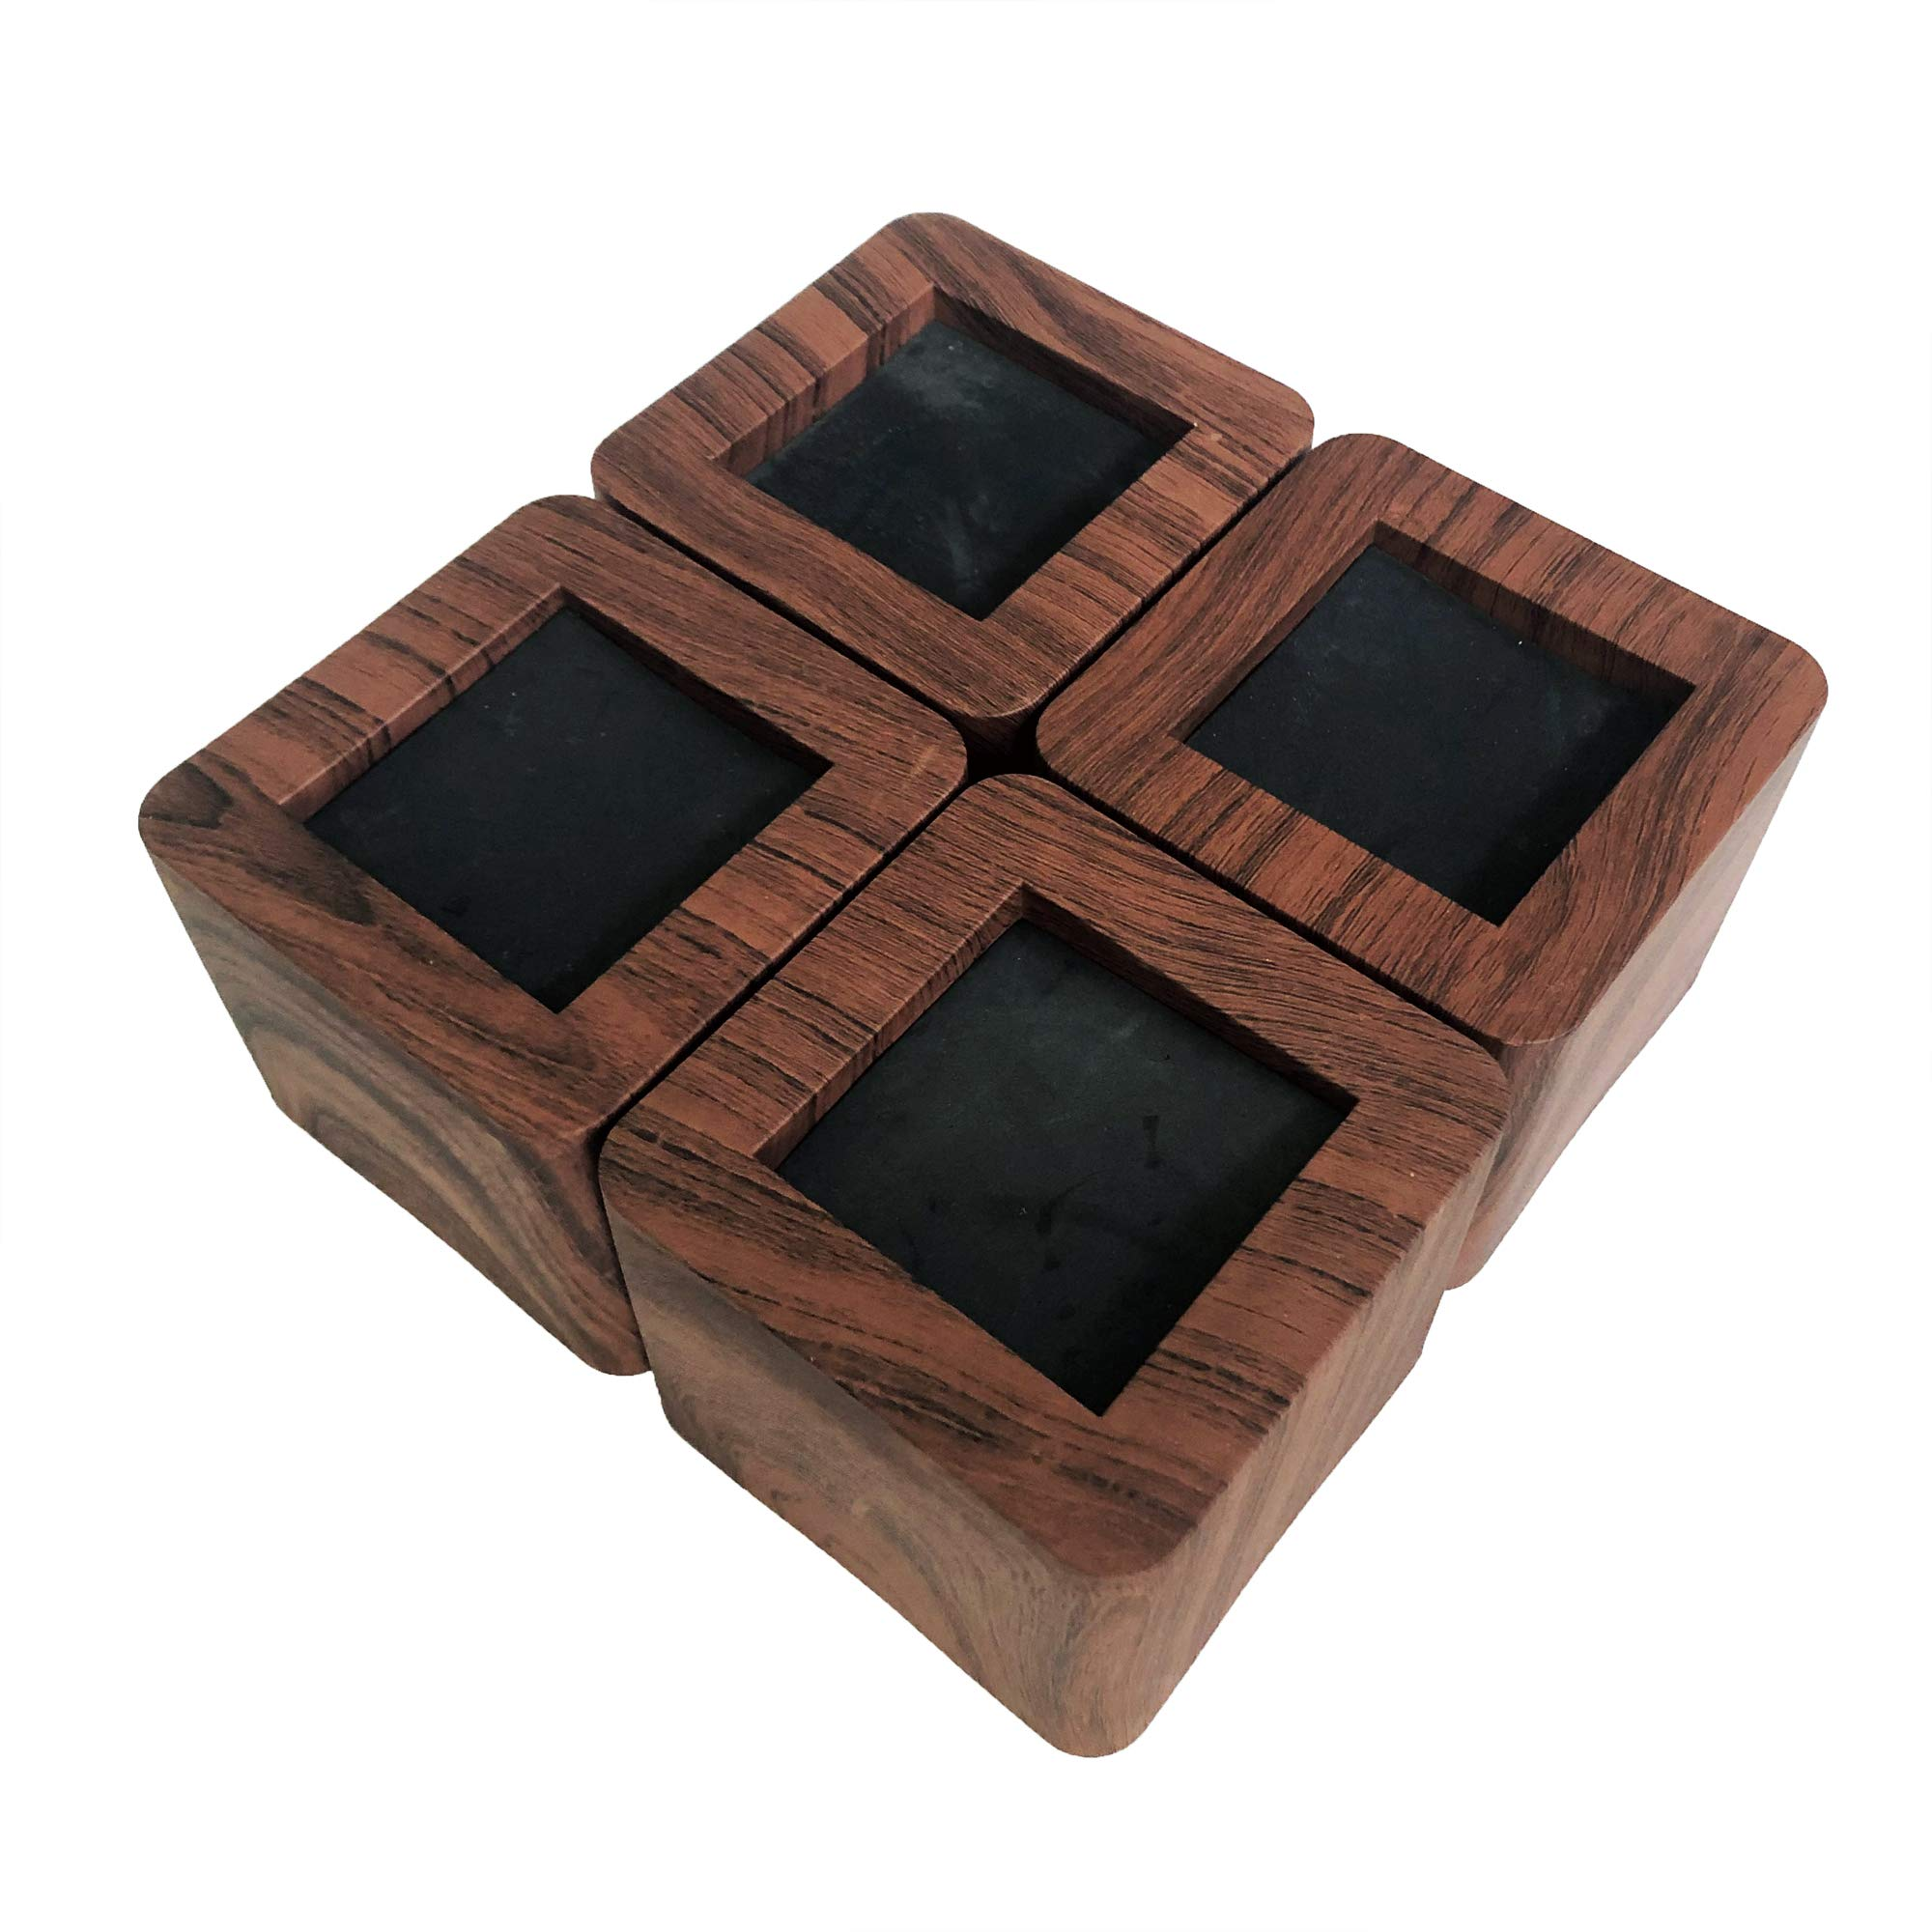 MIIX HOOM / Bed Risers 3 Inch | Heavy Duty Wooden Color Furniture Risers | 4PCS | Dark Brown Sofa Couch Risers or Table Risers (Dark Wood Color)